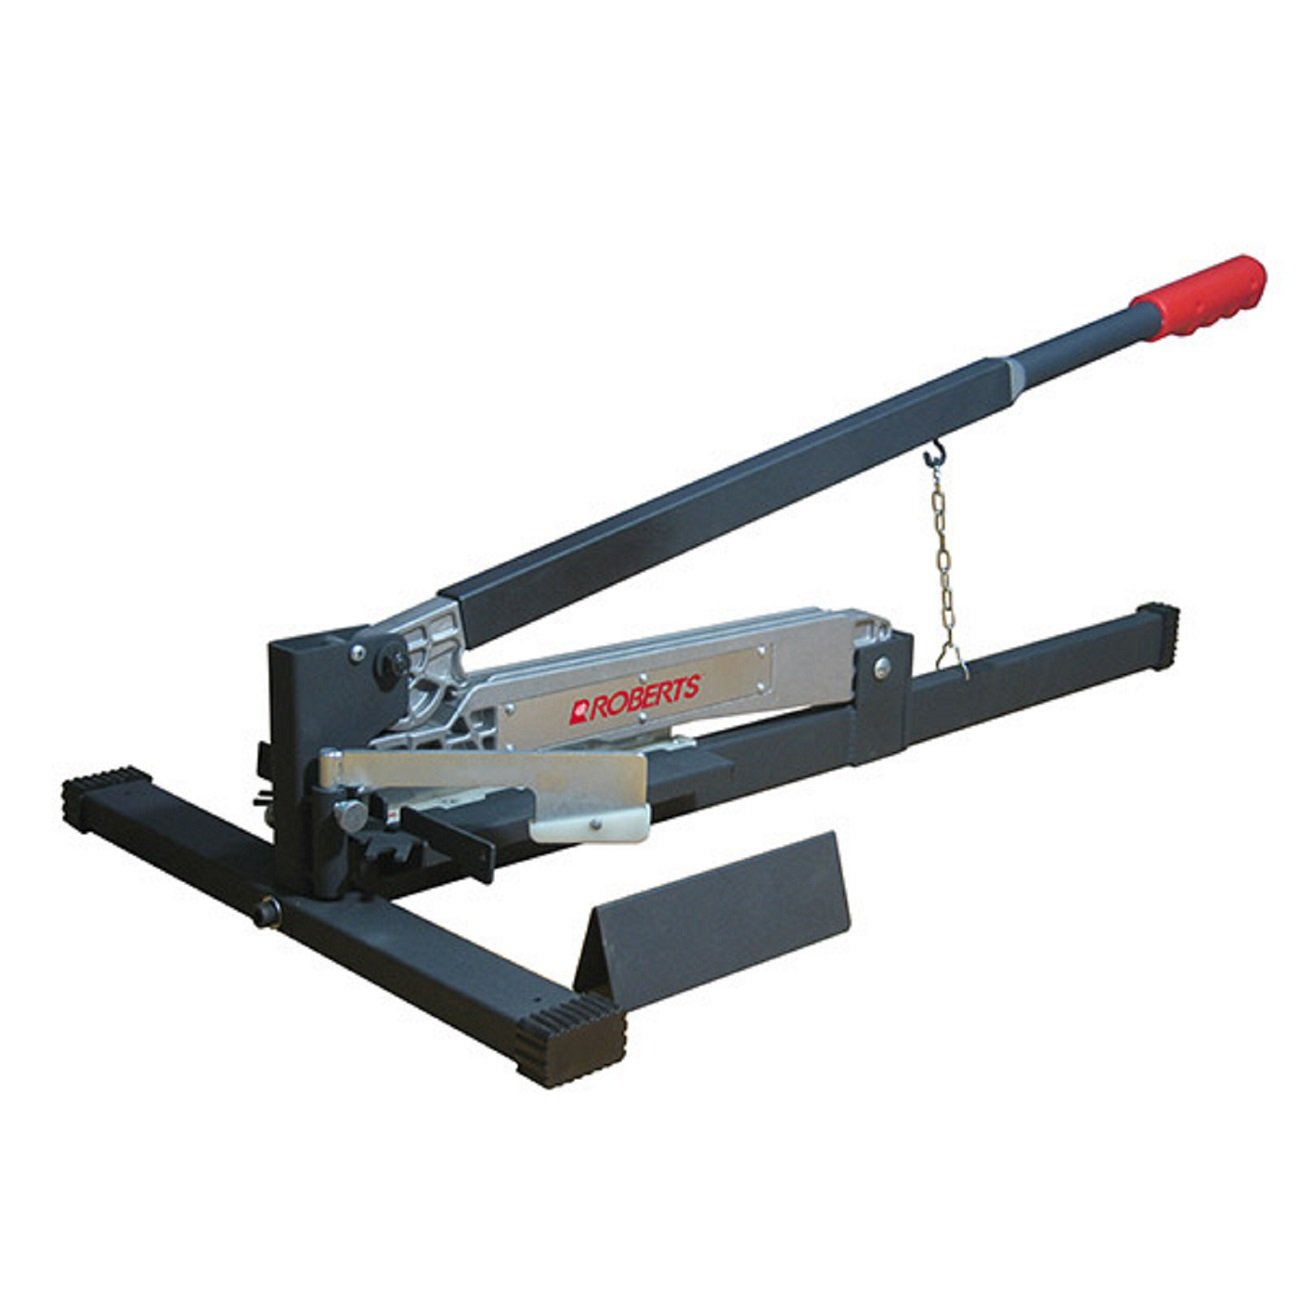 Roberts 10-60 Flooring Cutter, 9-Inch, Silver/Black by Roberts